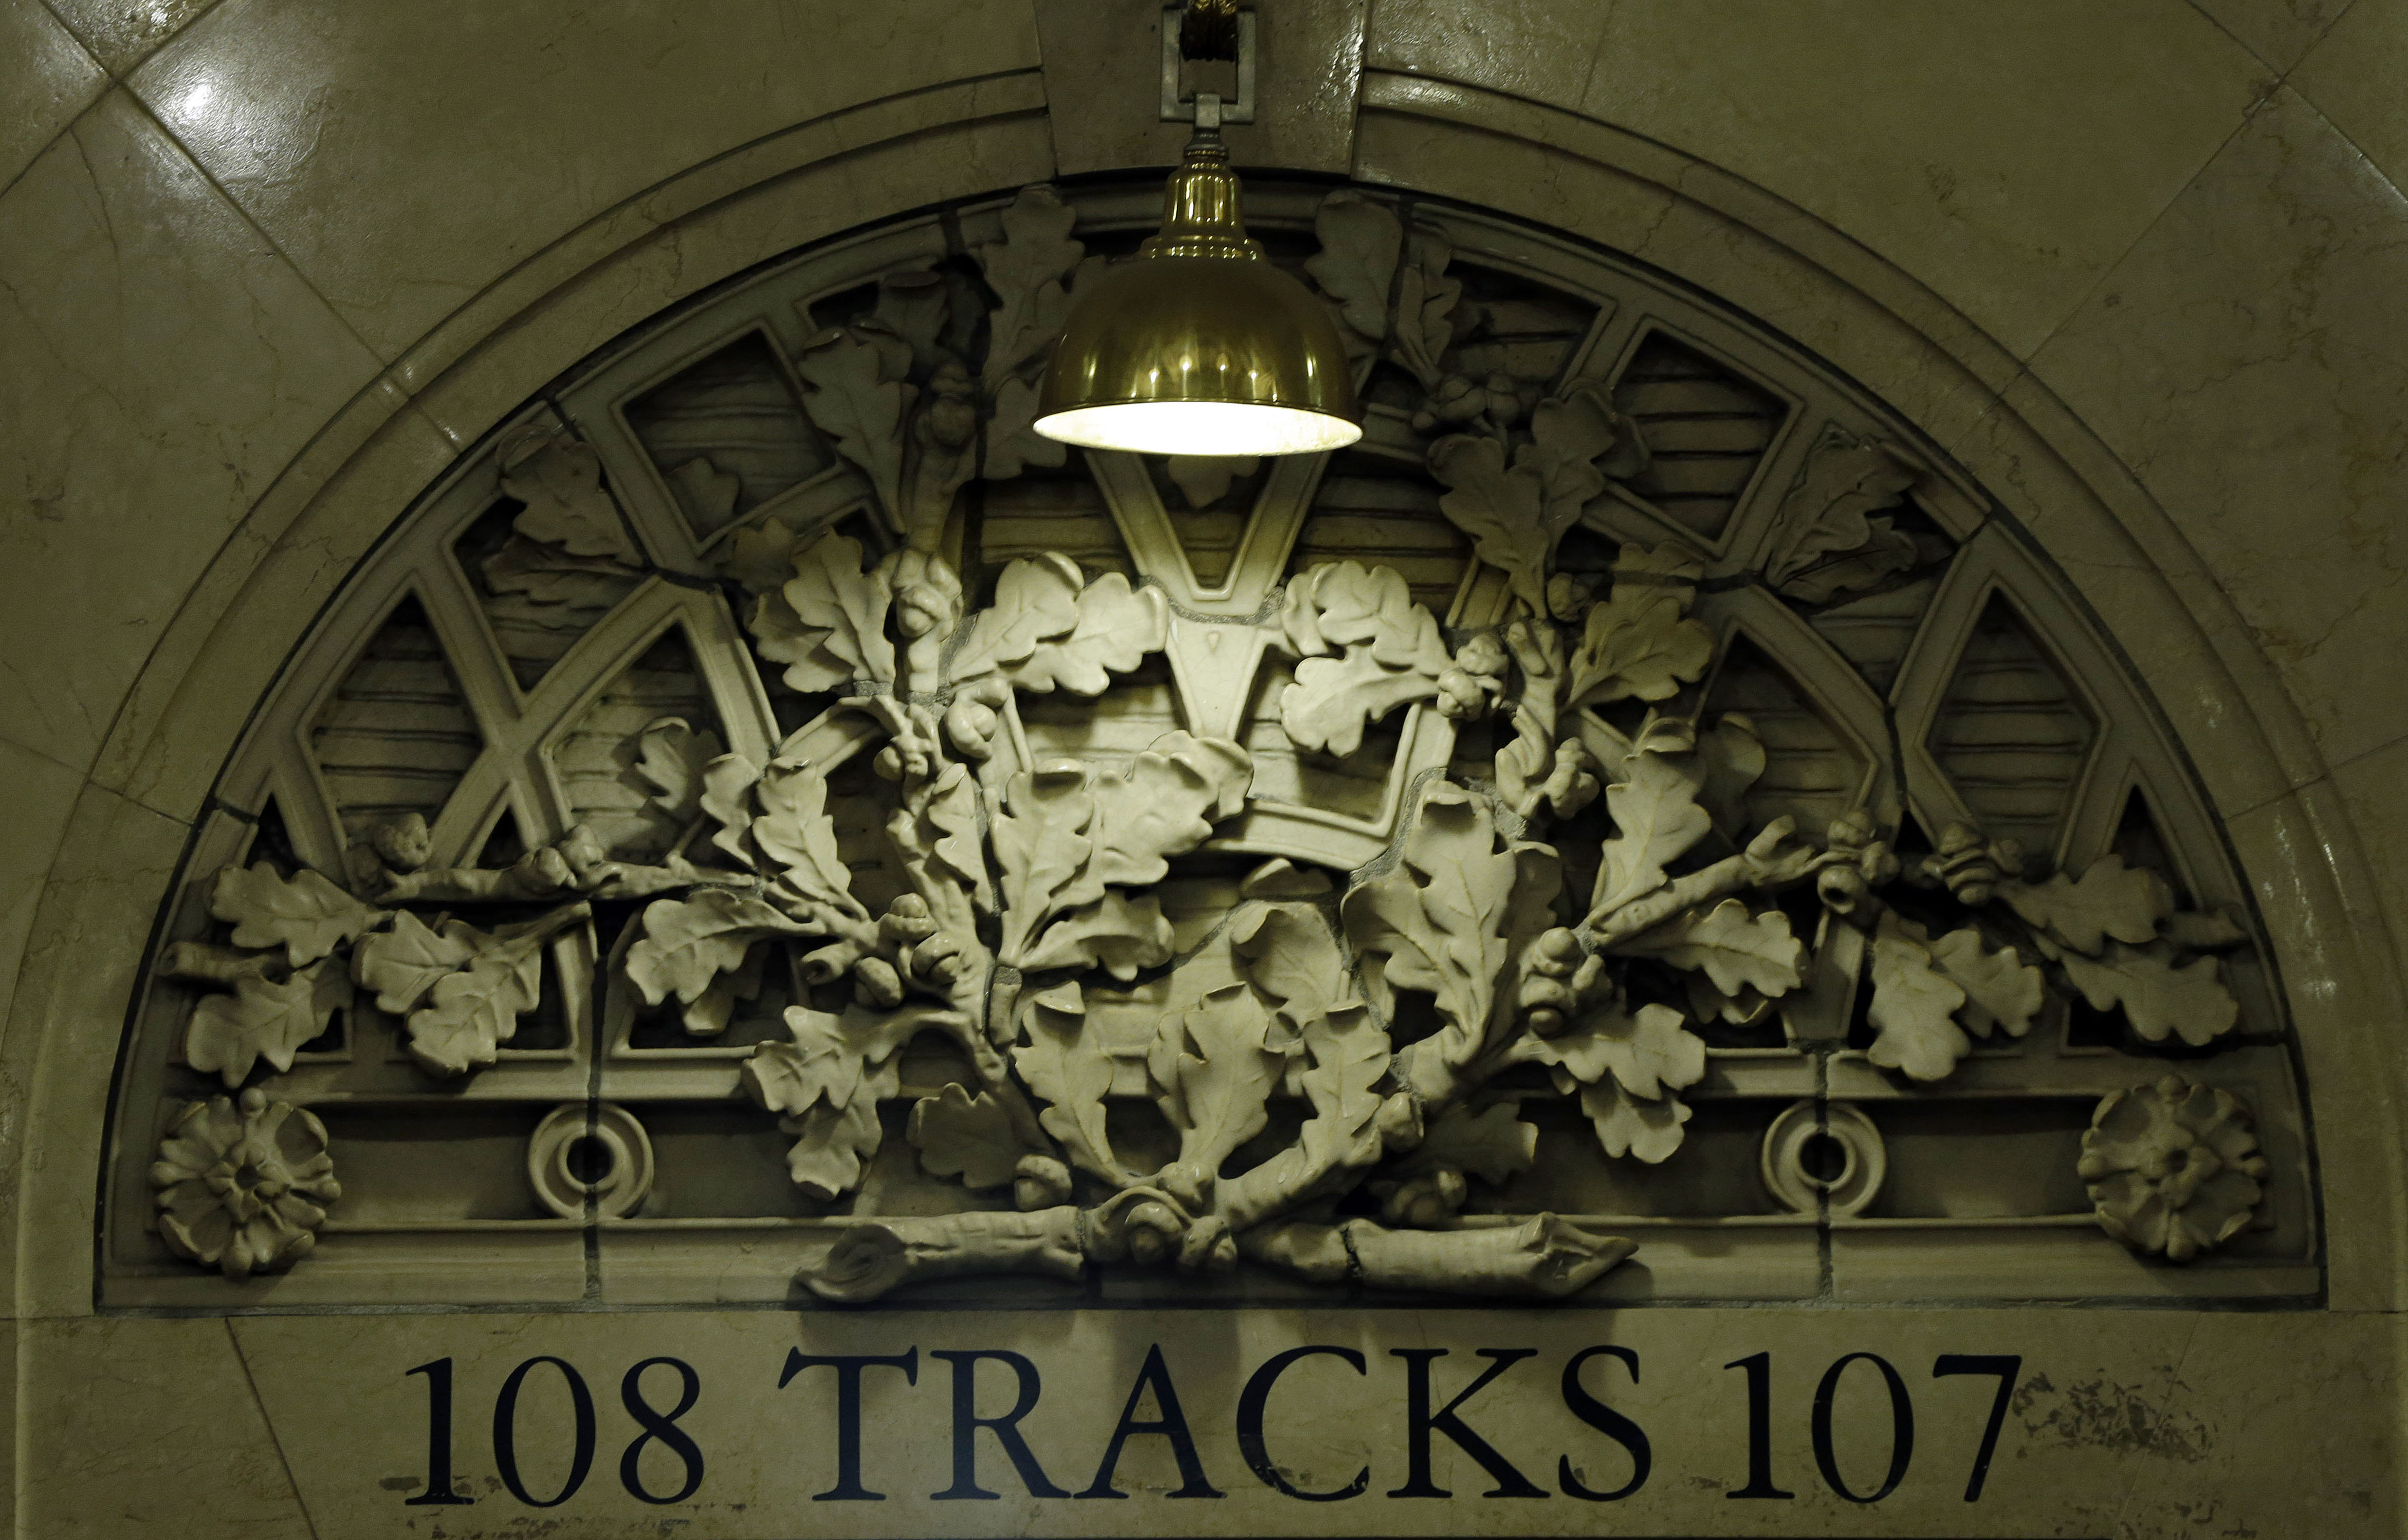 The terminal's track entrances are adorned with acorns and oak leaf clusters as a tribute to the Vanderbilt family.